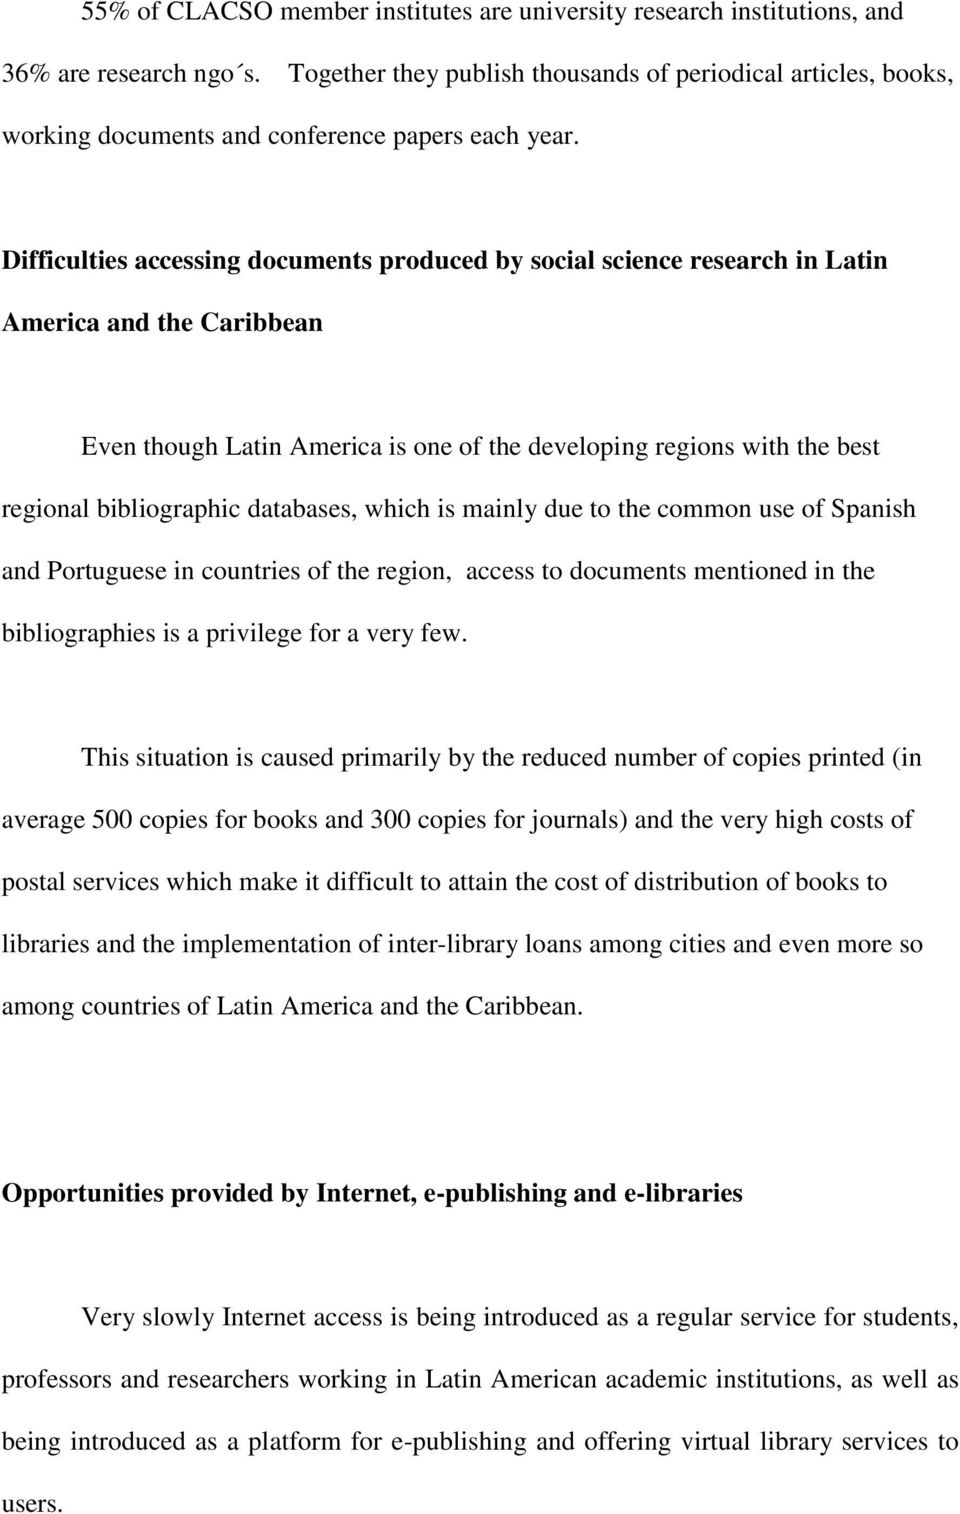 Difficulties accessing documents produced by social science research in Latin America and the Caribbean Even though Latin America is one of the developing regions with the best regional bibliographic